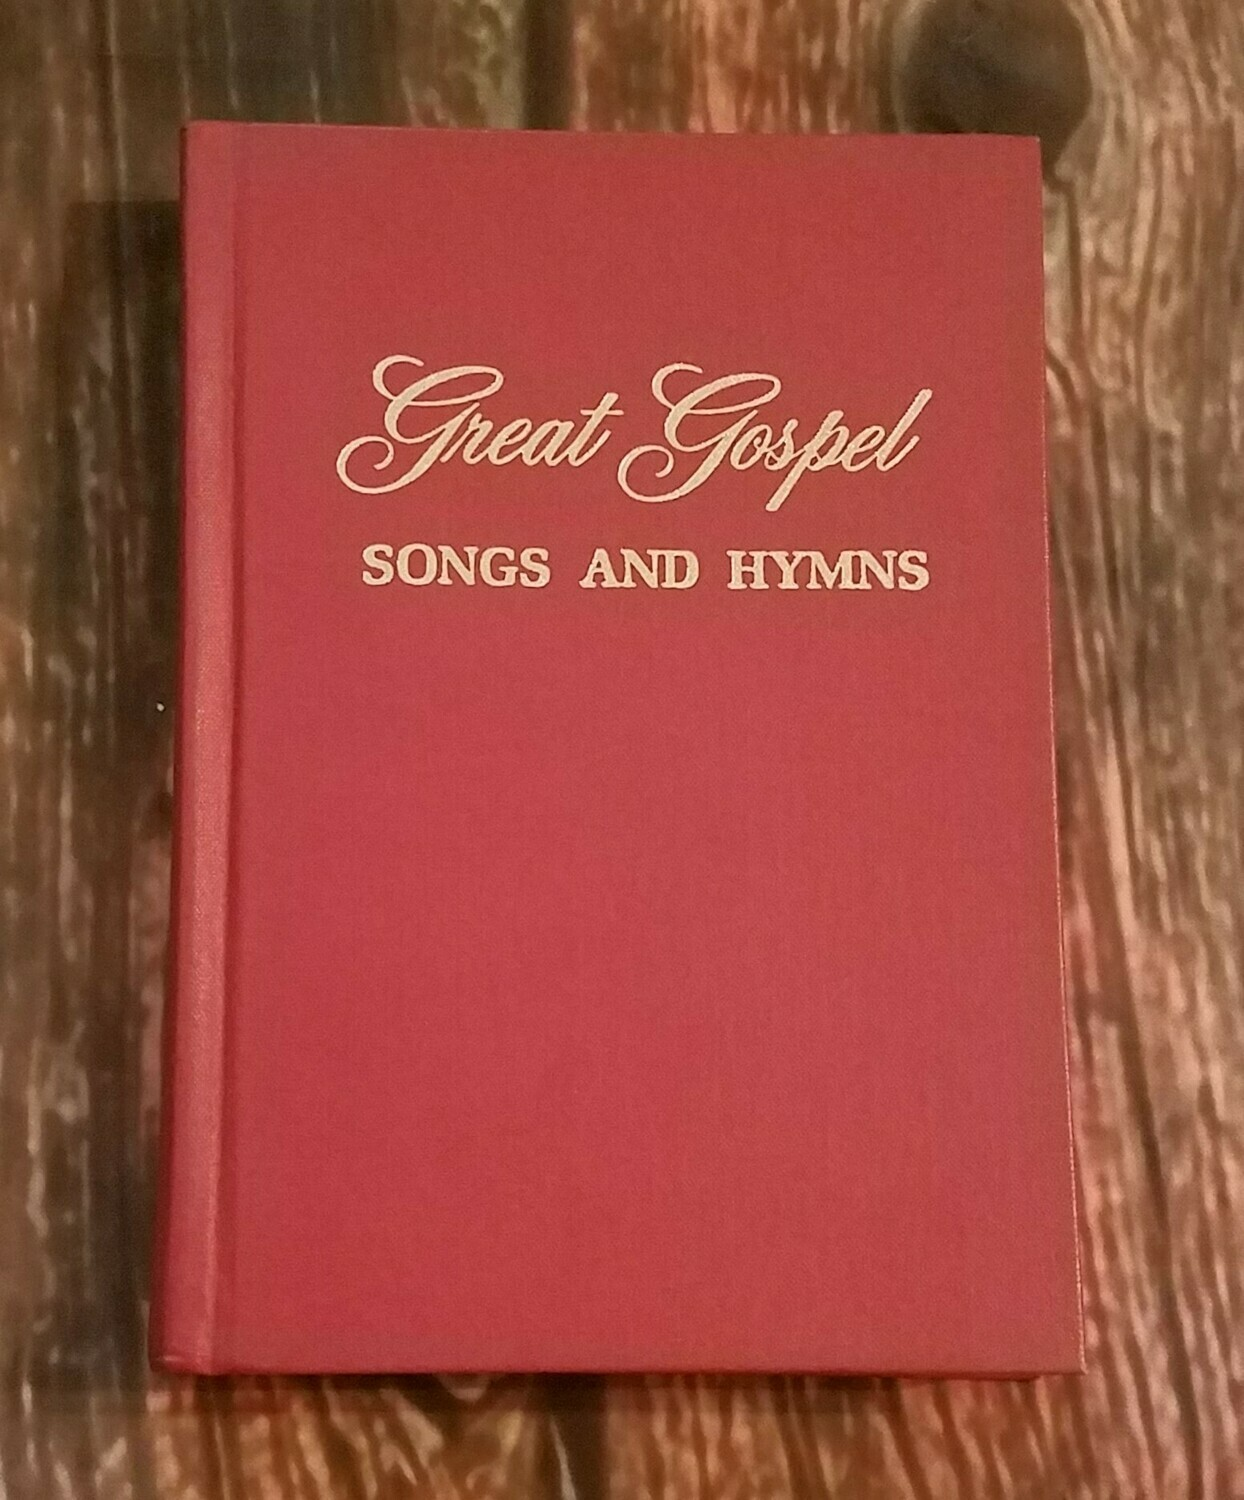 Great Gospel: Songs and Hymns by Bill Gaither, Clyde Williams, Ezra H. Knight, Videt Polk, Jack Taylor, and P.J. Zondervan